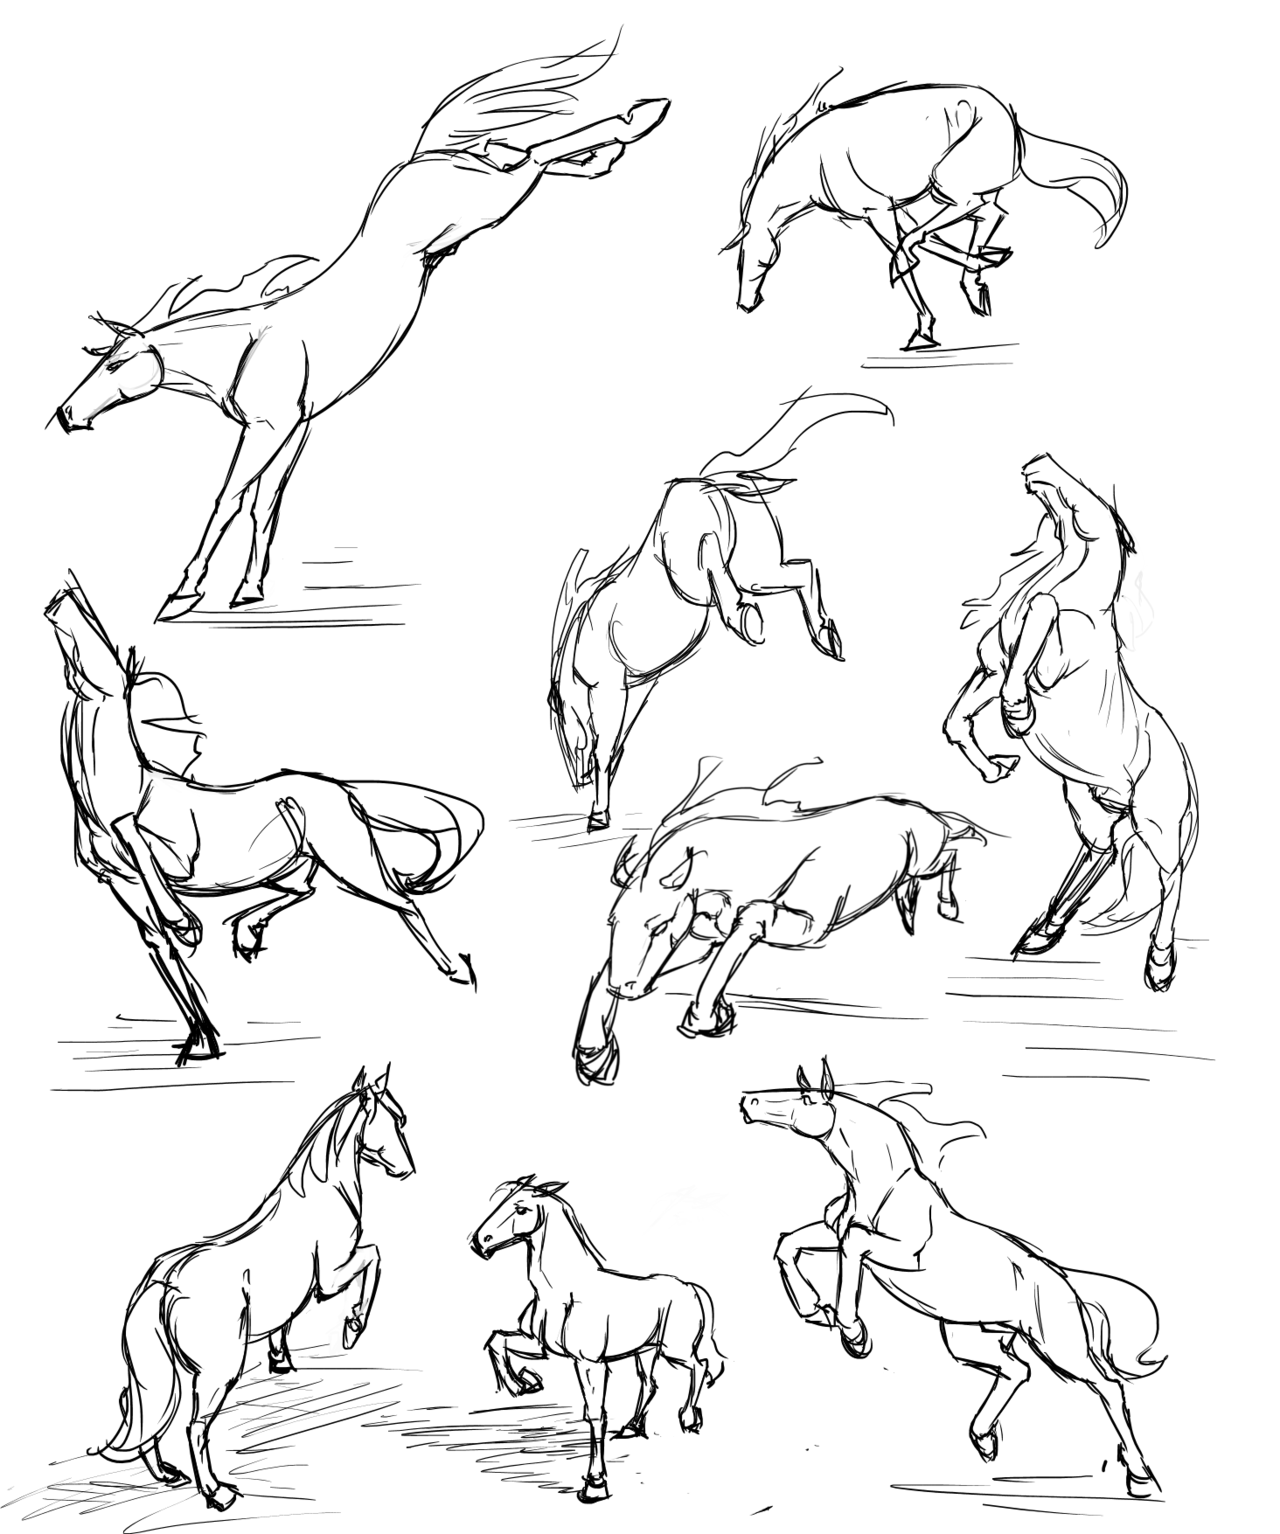 Pin by Cloudy Wolf on Horse Anatomy | Pinterest | Animal drawings ...